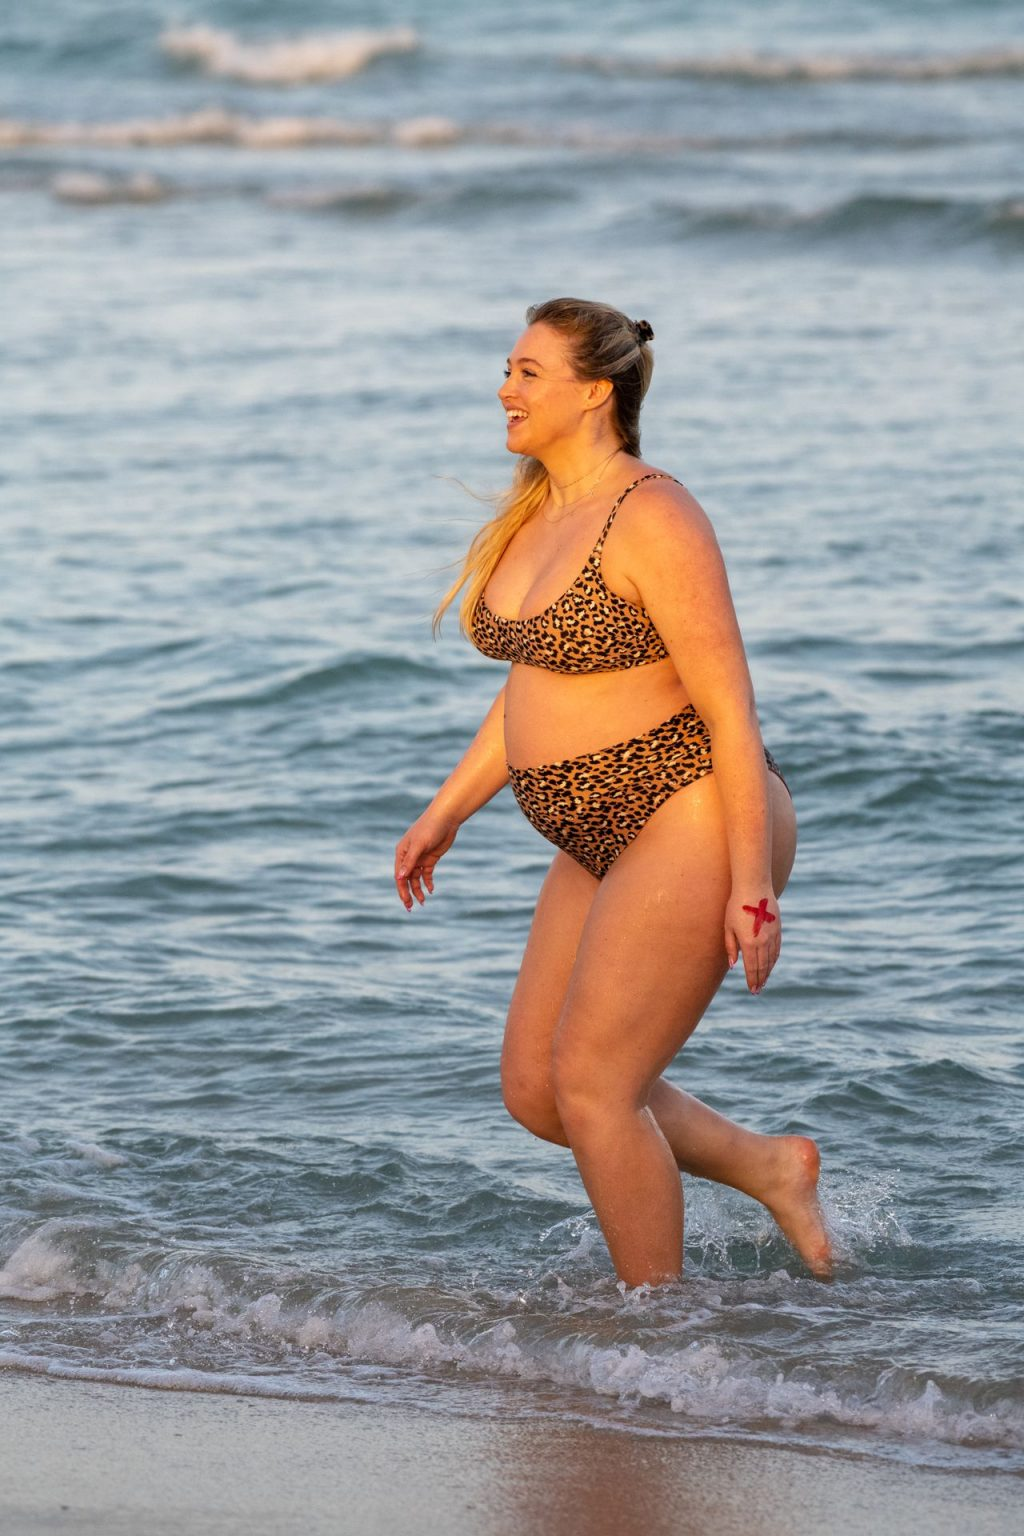 Iskra Lawrence Sexy The Fappening Blog 19 1024x1536 - Heavily Pregnant Model Iskra Lawrence Takes A Sunset Dip In Miami Beach (44 Photos)